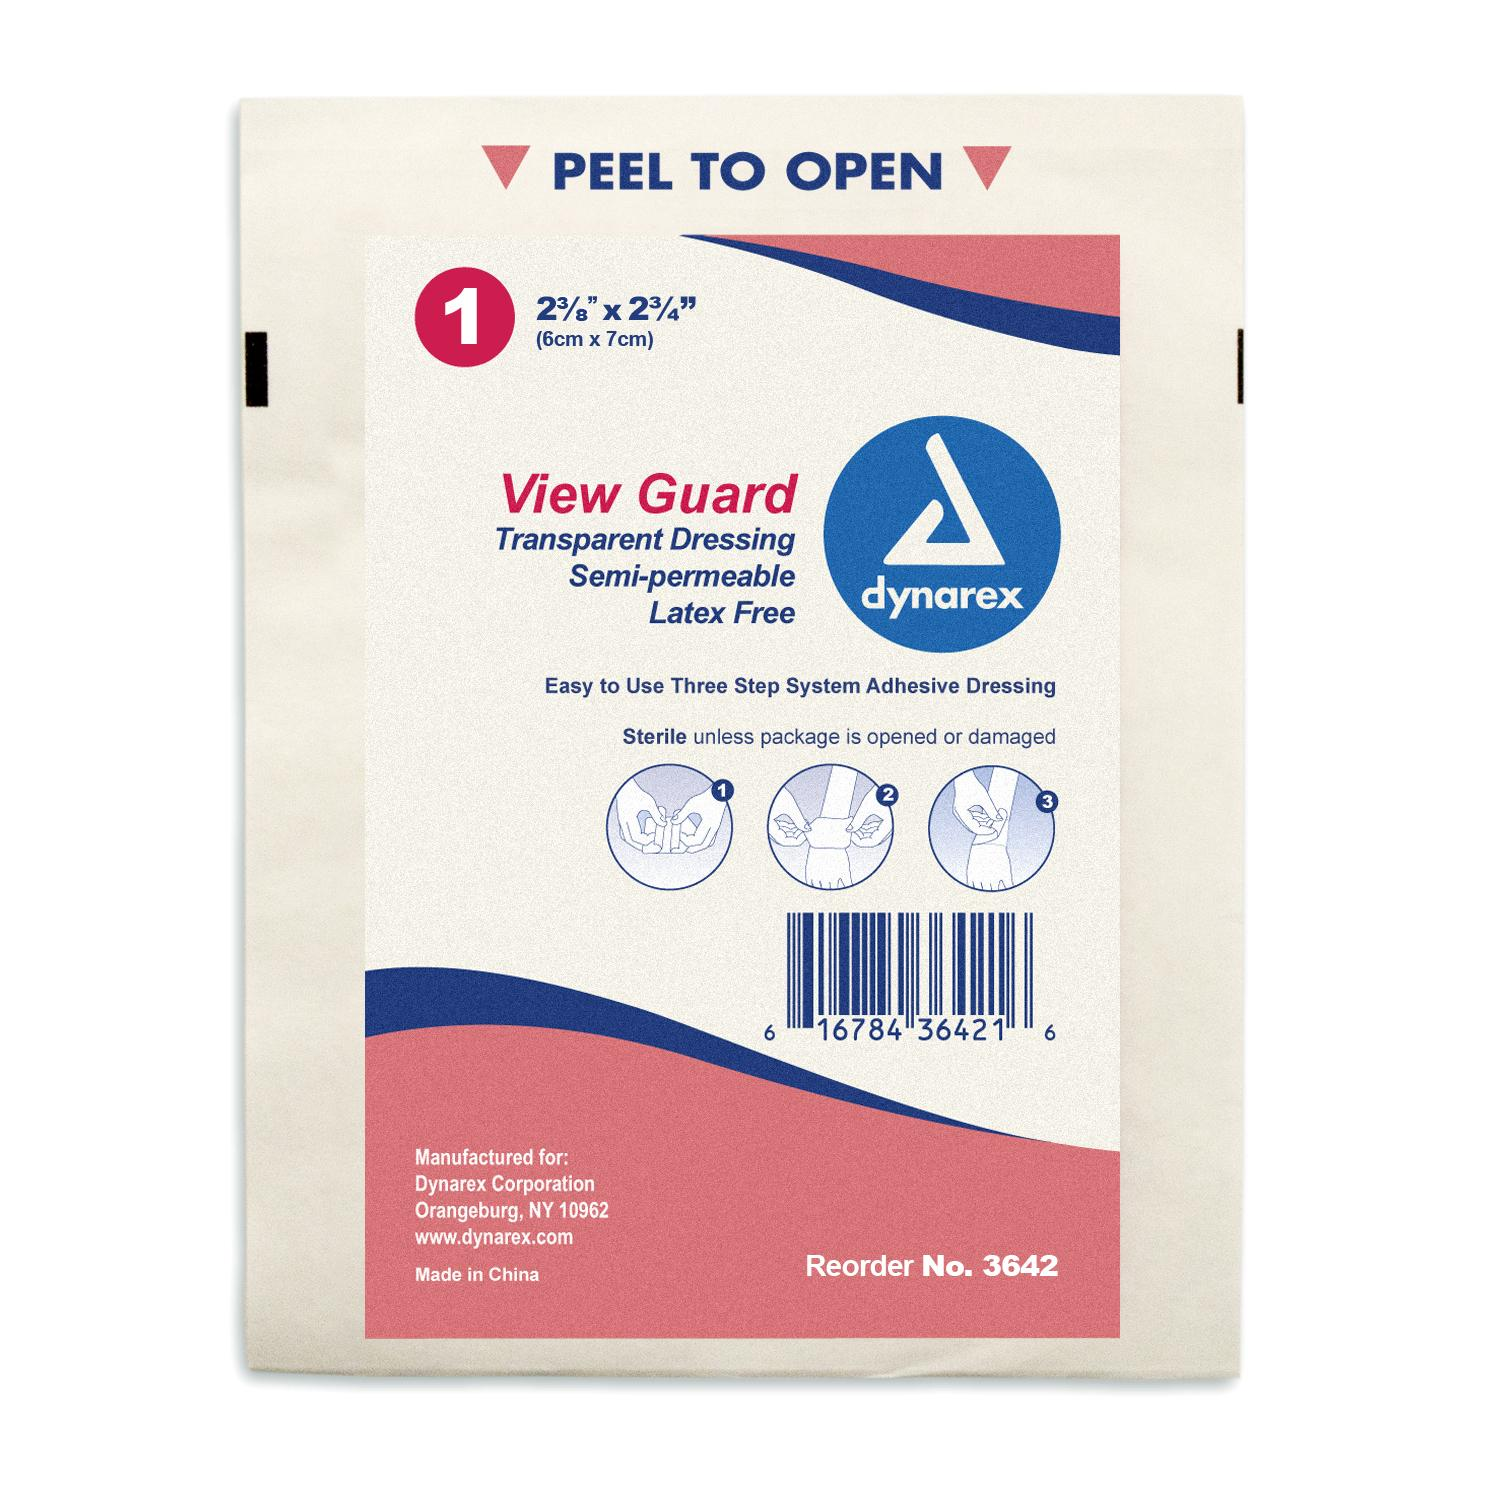 View Guard Transparent Dressings 2 3/8